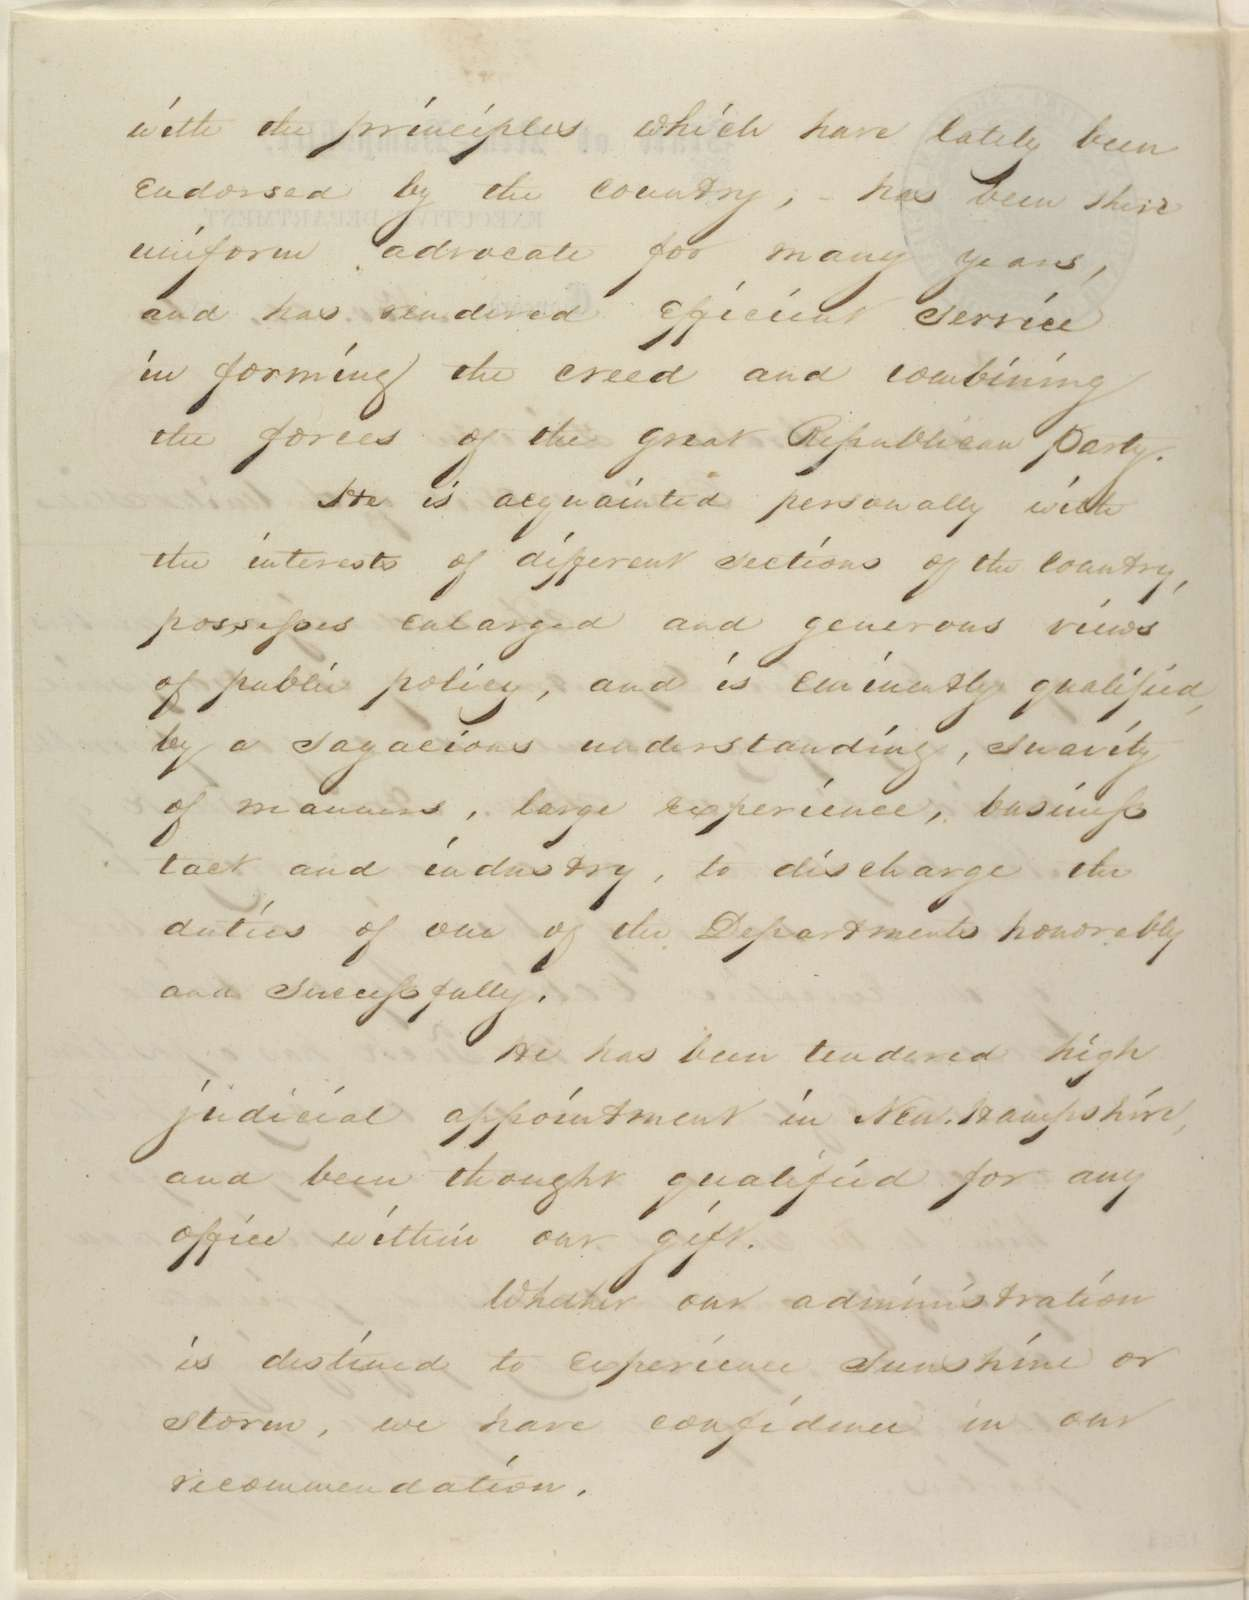 Abraham Lincoln papers: Series 1. General Correspondence. 1833-1916: Ichabod Goodwin, et al. to Abraham Lincoln, Thursday, November 22, 1860 (New Hampshire Executive Dept. recommends Amos Tuck for cabinet)